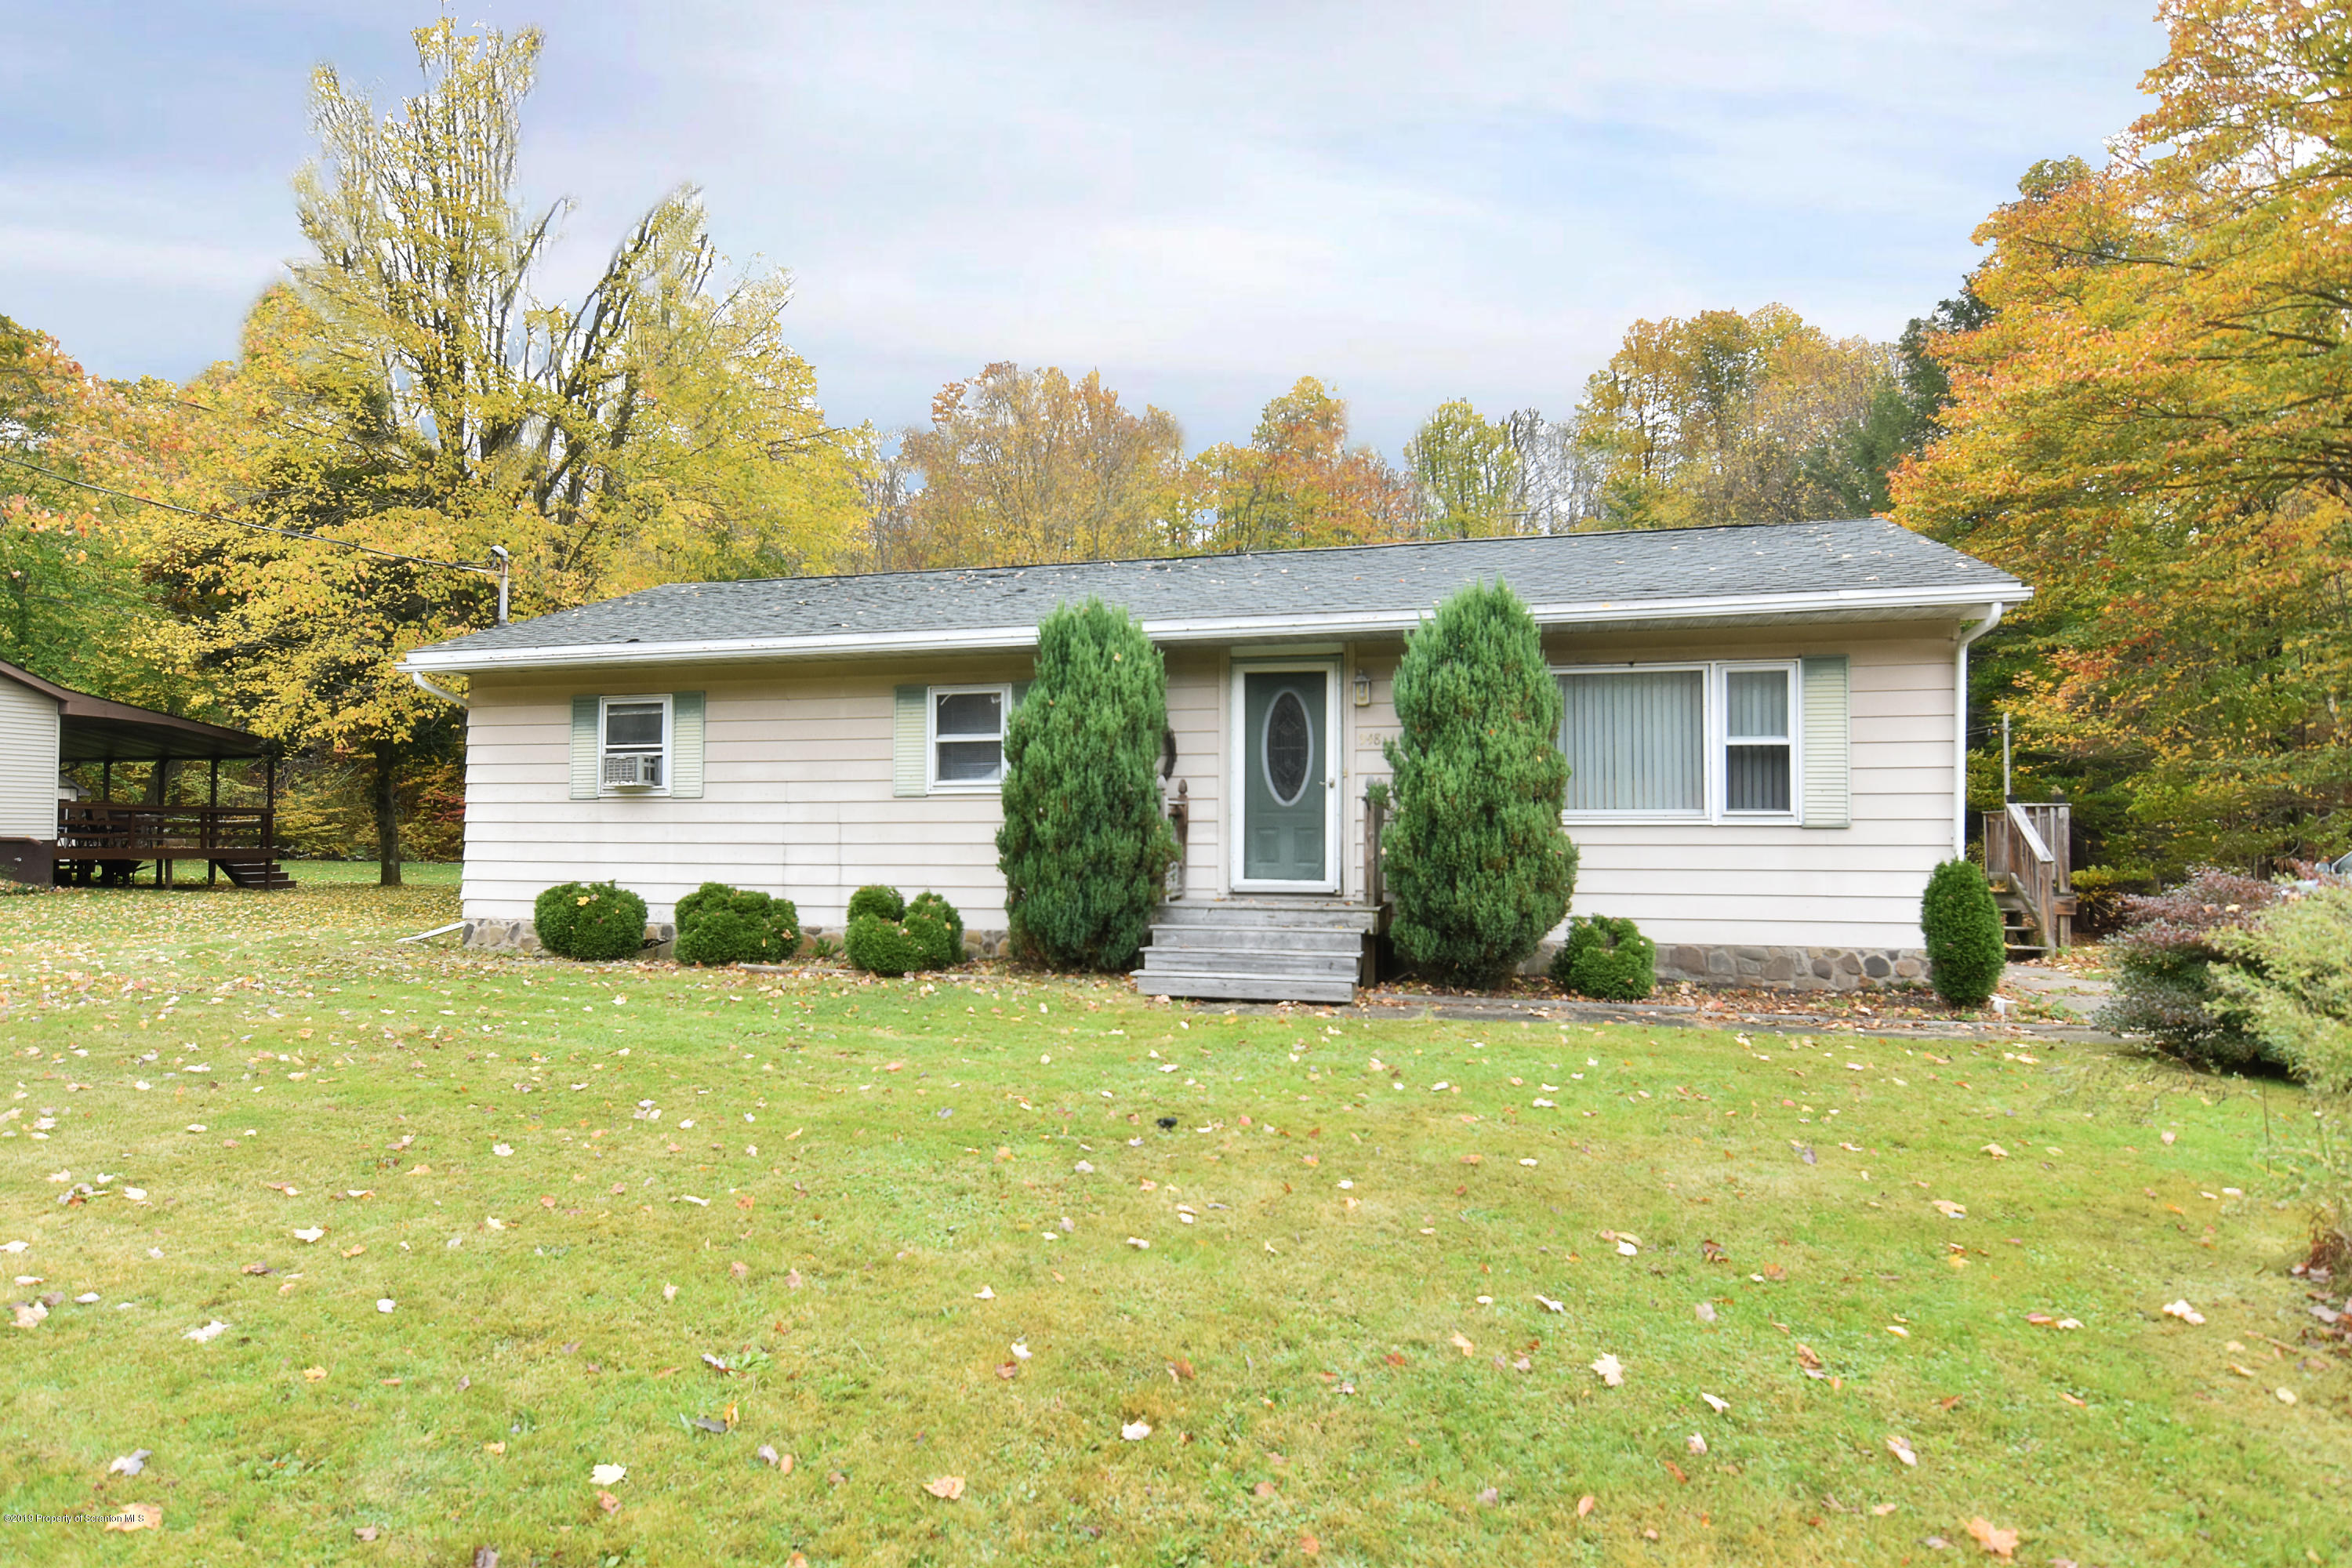 948 Main St, Simpson, Pennsylvania 18407, 3 Bedrooms Bedrooms, 6 Rooms Rooms,1 BathroomBathrooms,Single Family,For Sale,Main,19-5008